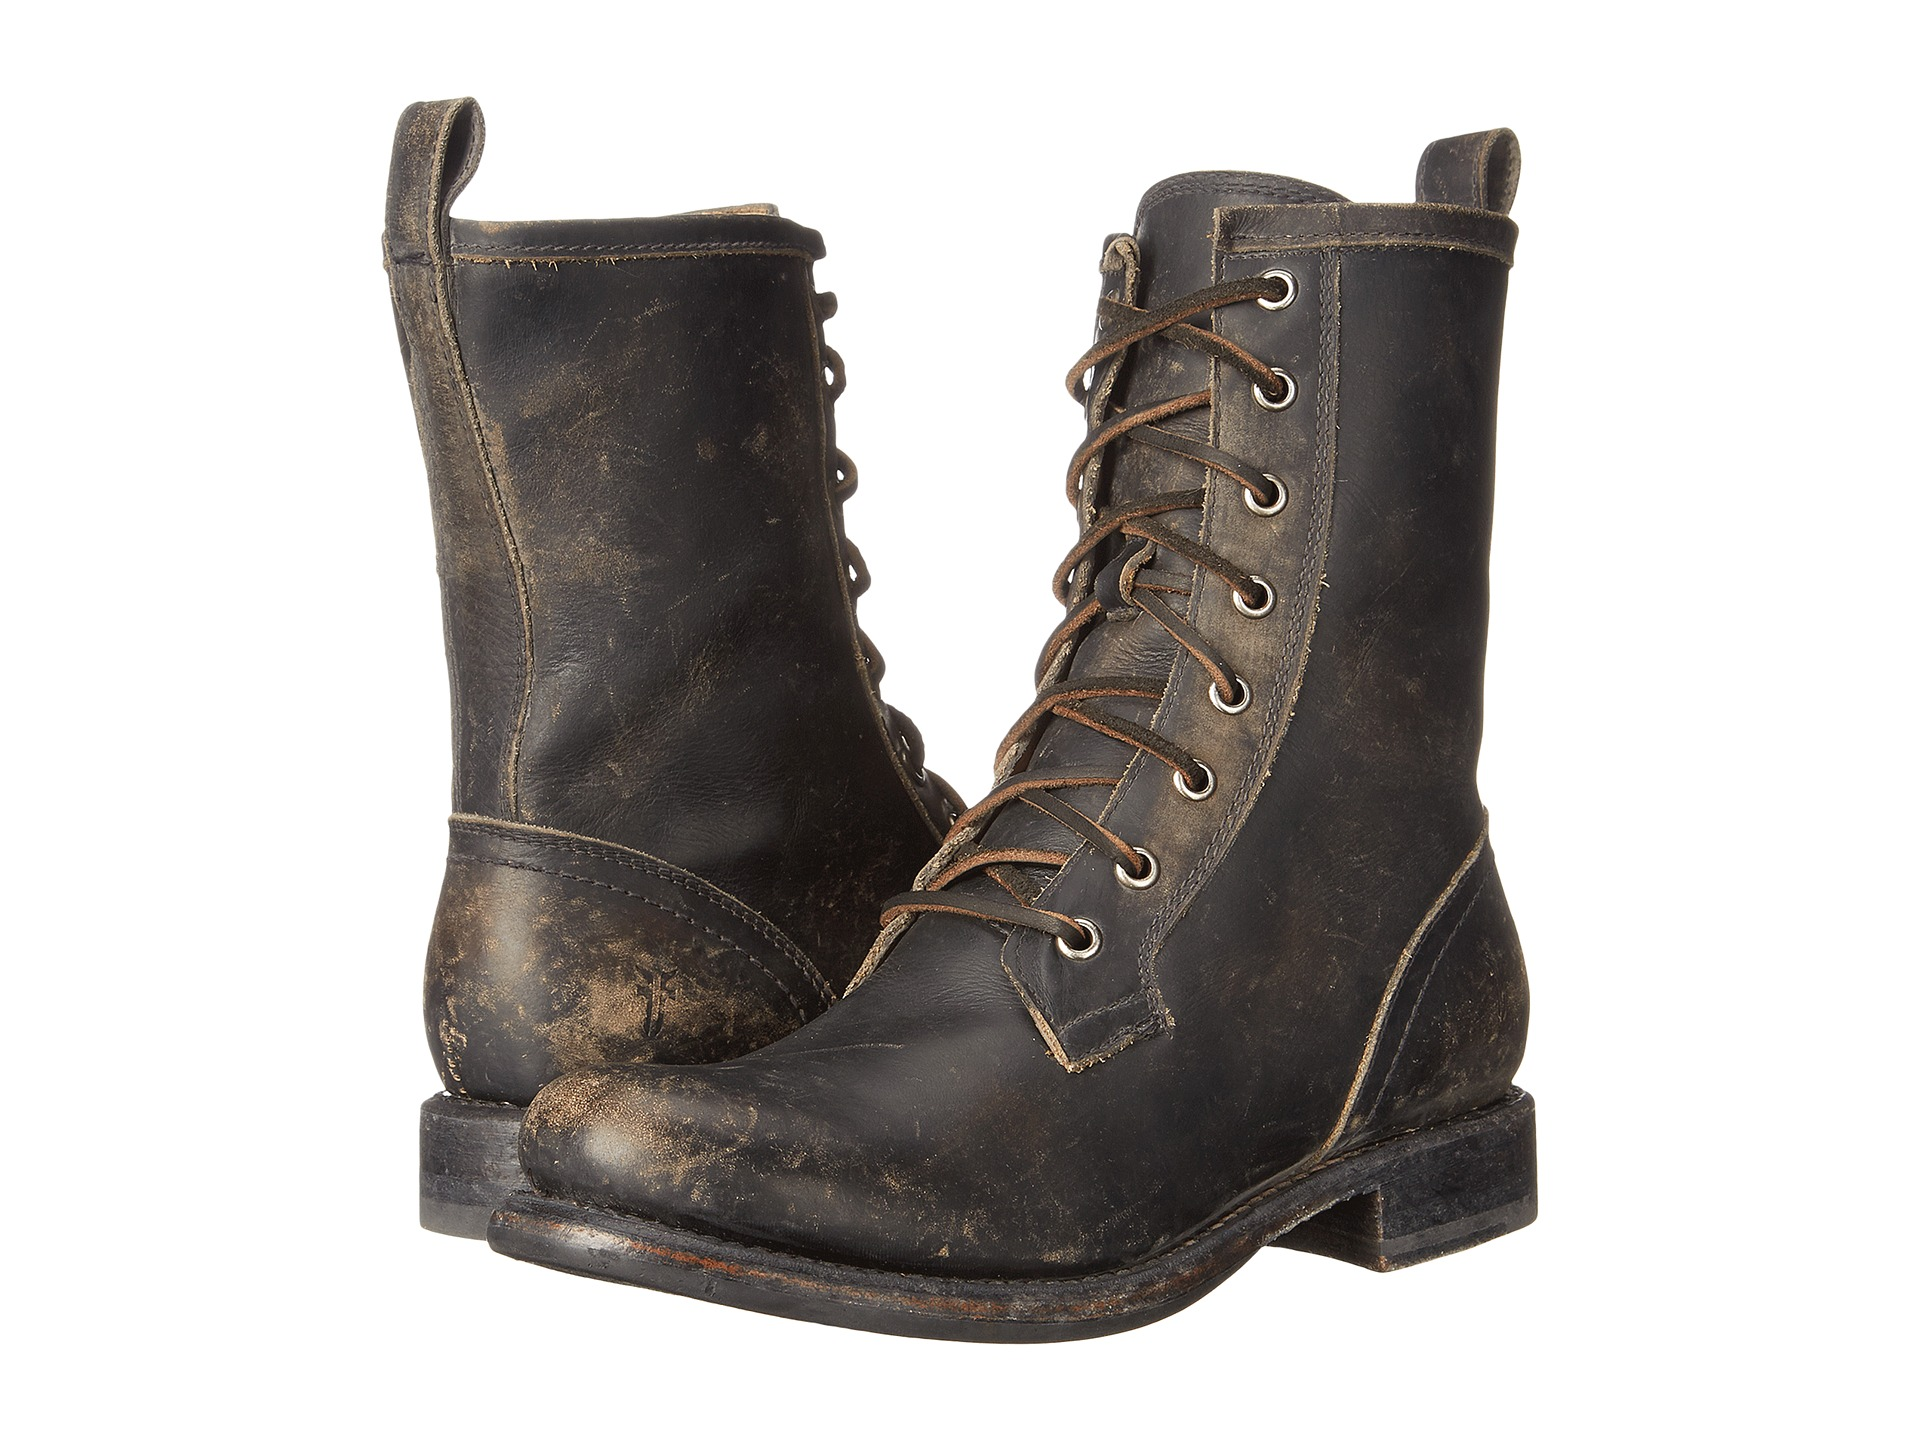 Stone Colored Combat Boots Coltford Boots